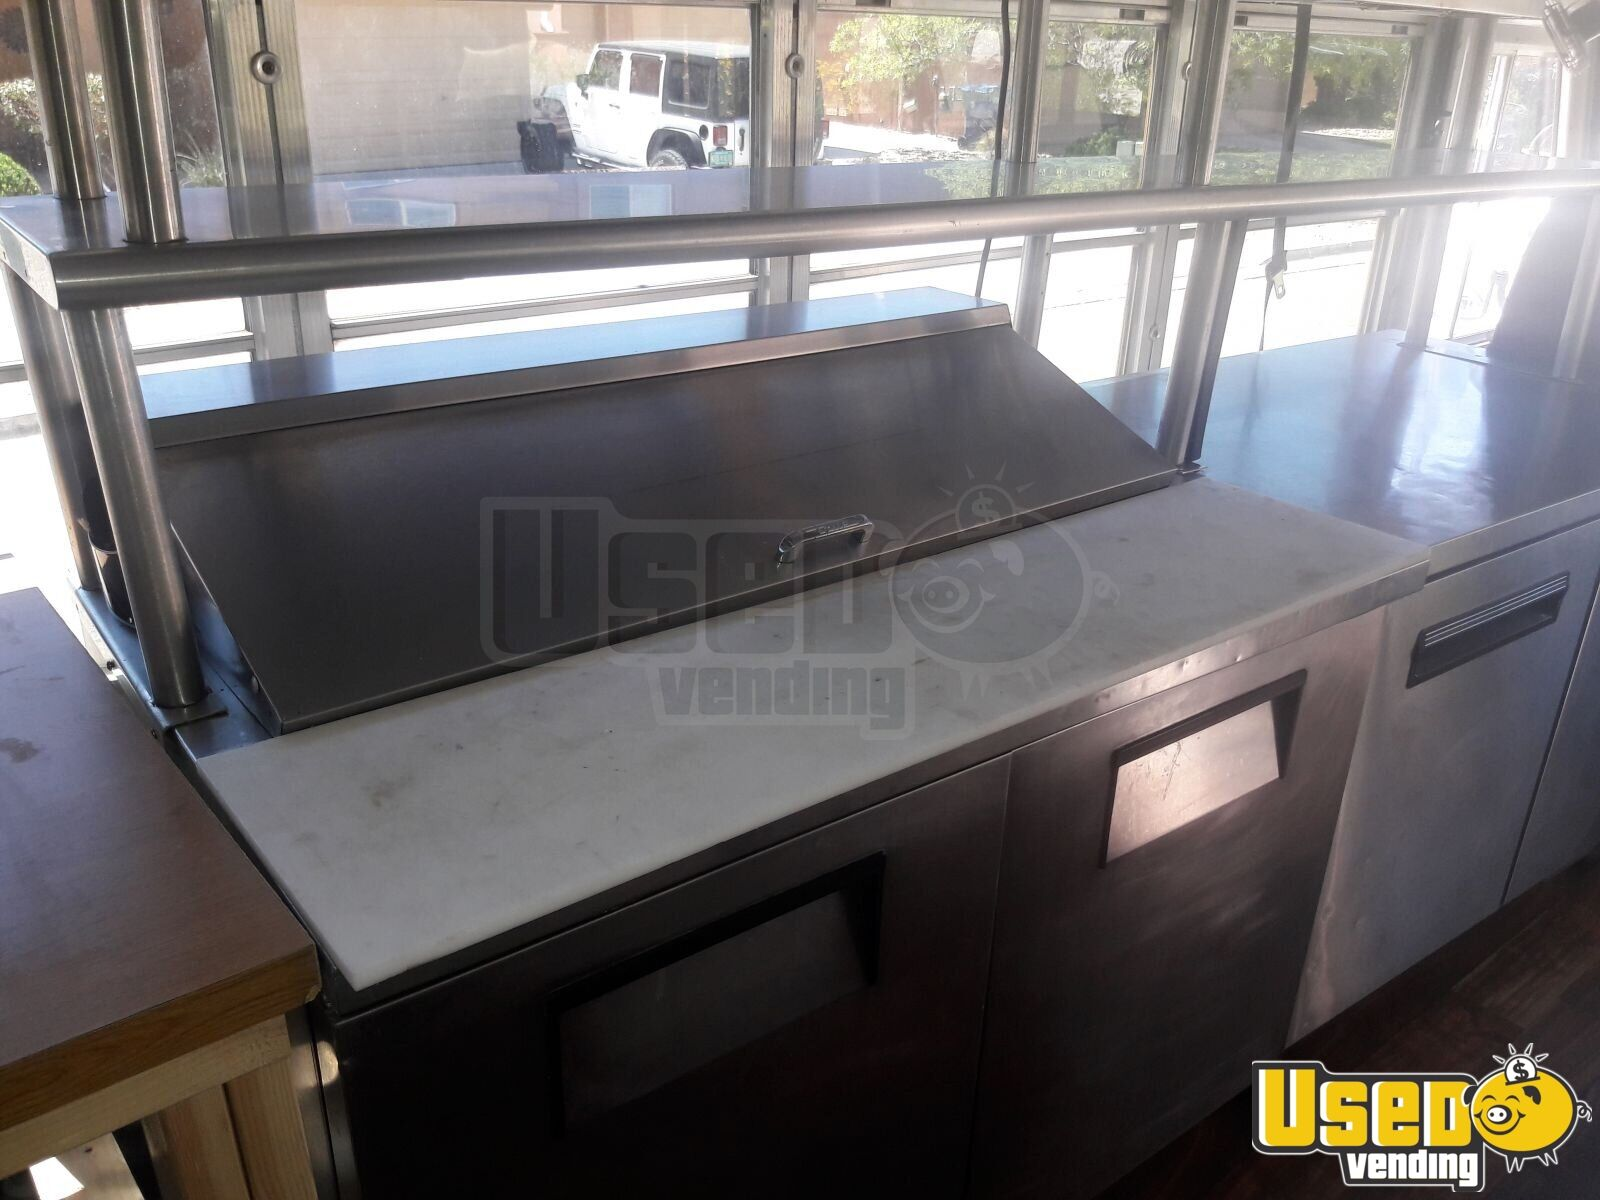 2002 Bluebird All-purpose Food Truck Exhaust Hood New Mexico Gas Engine for Sale - 10